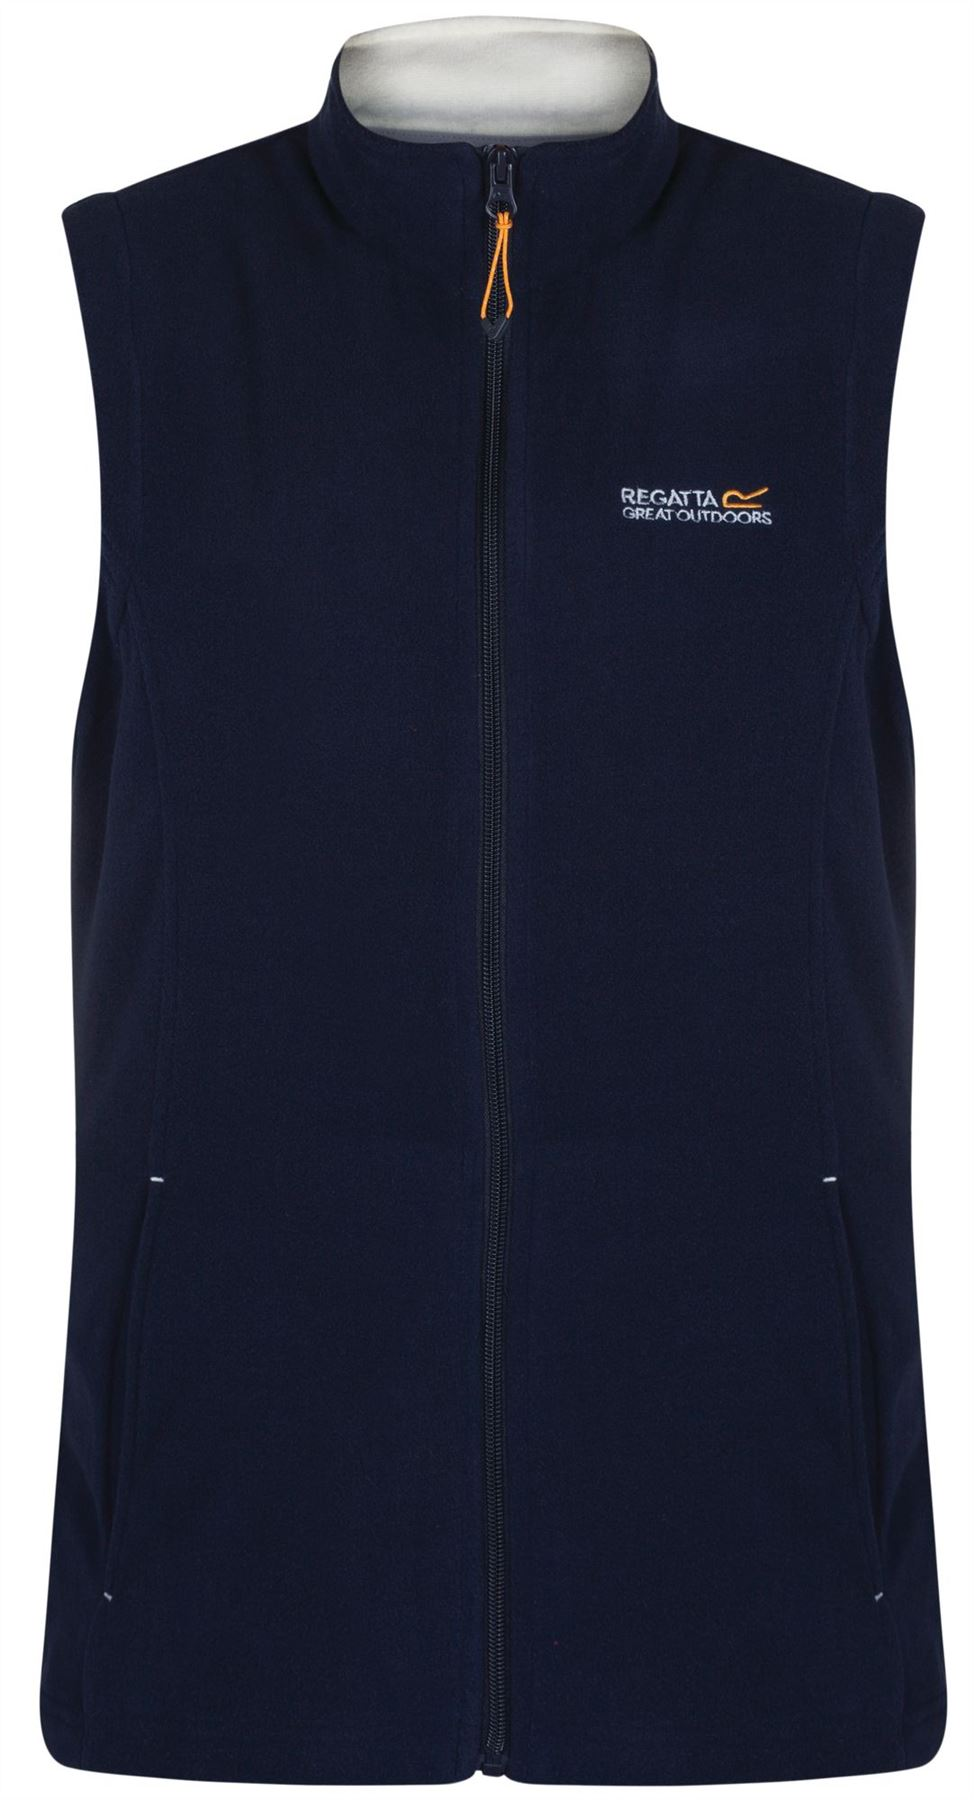 Regatta-Sweetness-II-RWB053-Full-Zip-Womens-Sleeveless-Bodywarmer thumbnail 11